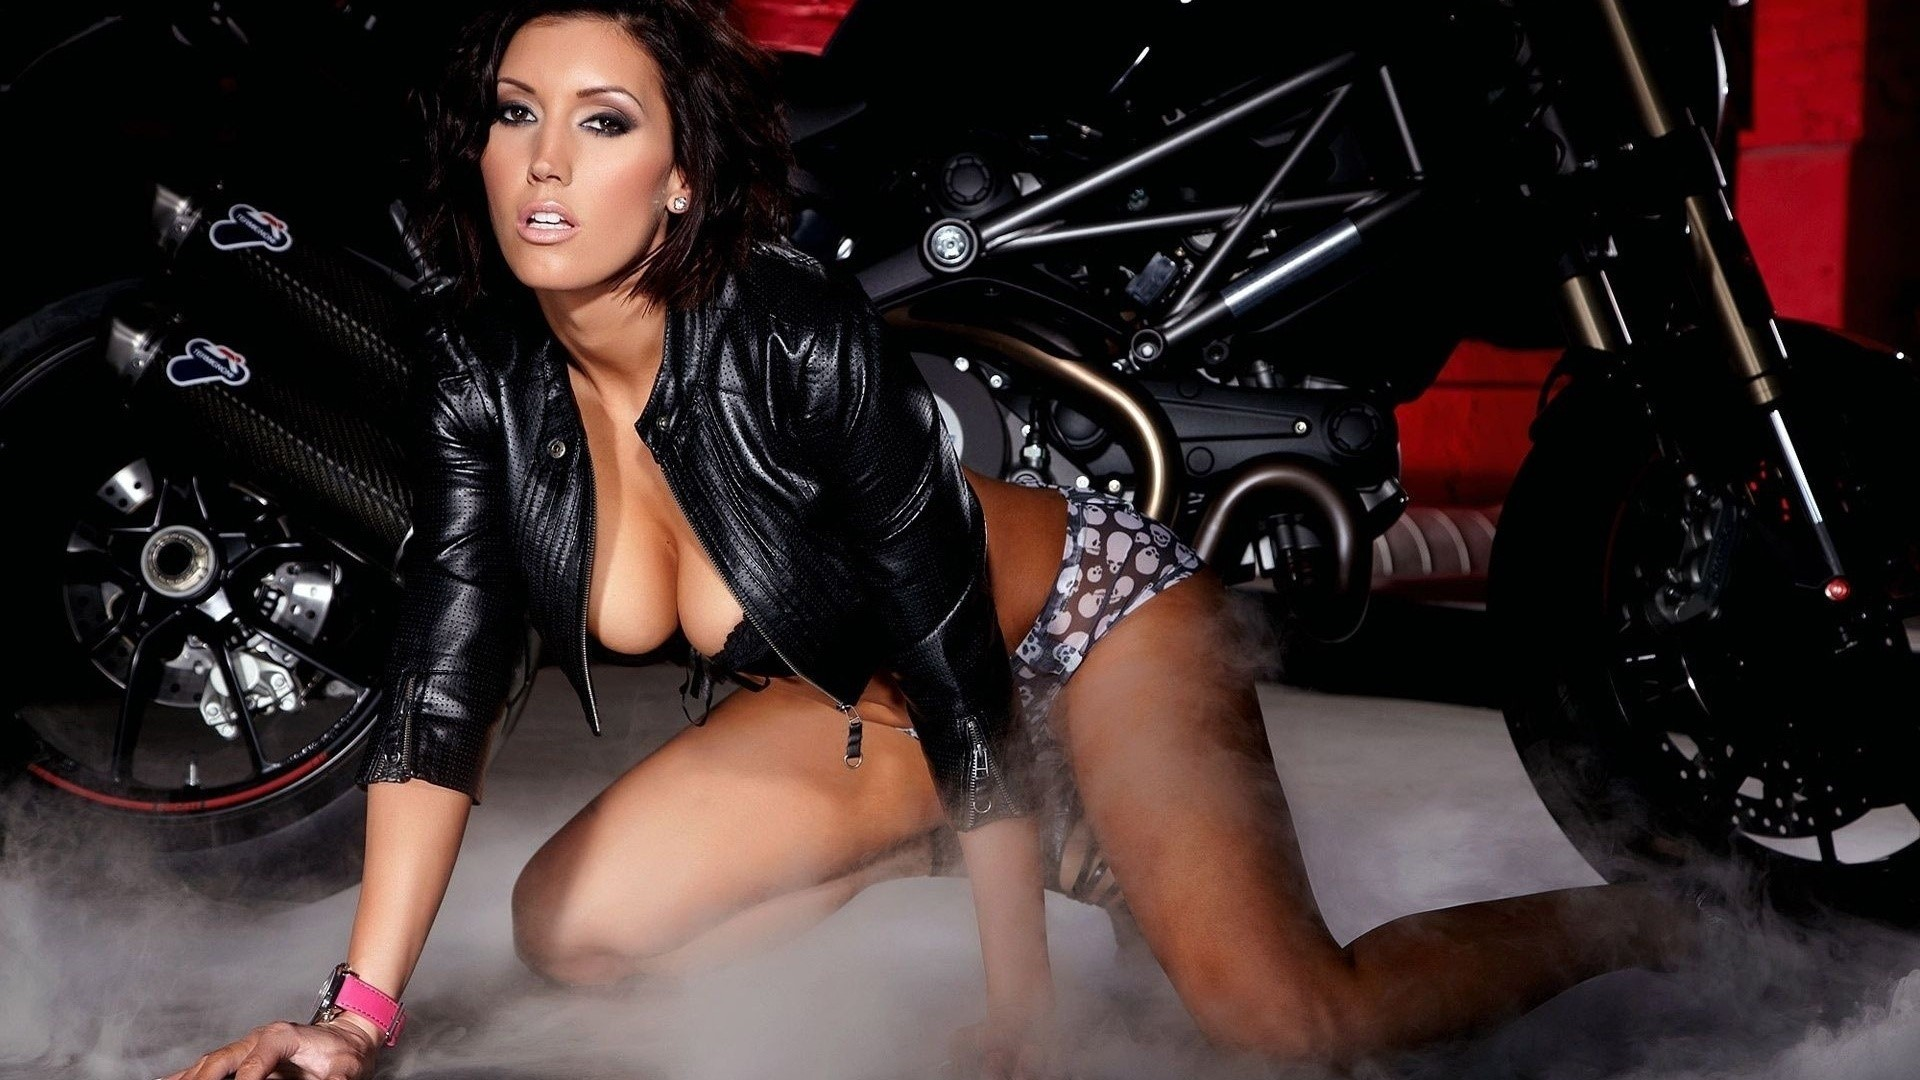 Dylan Ryder Wallpapers HD